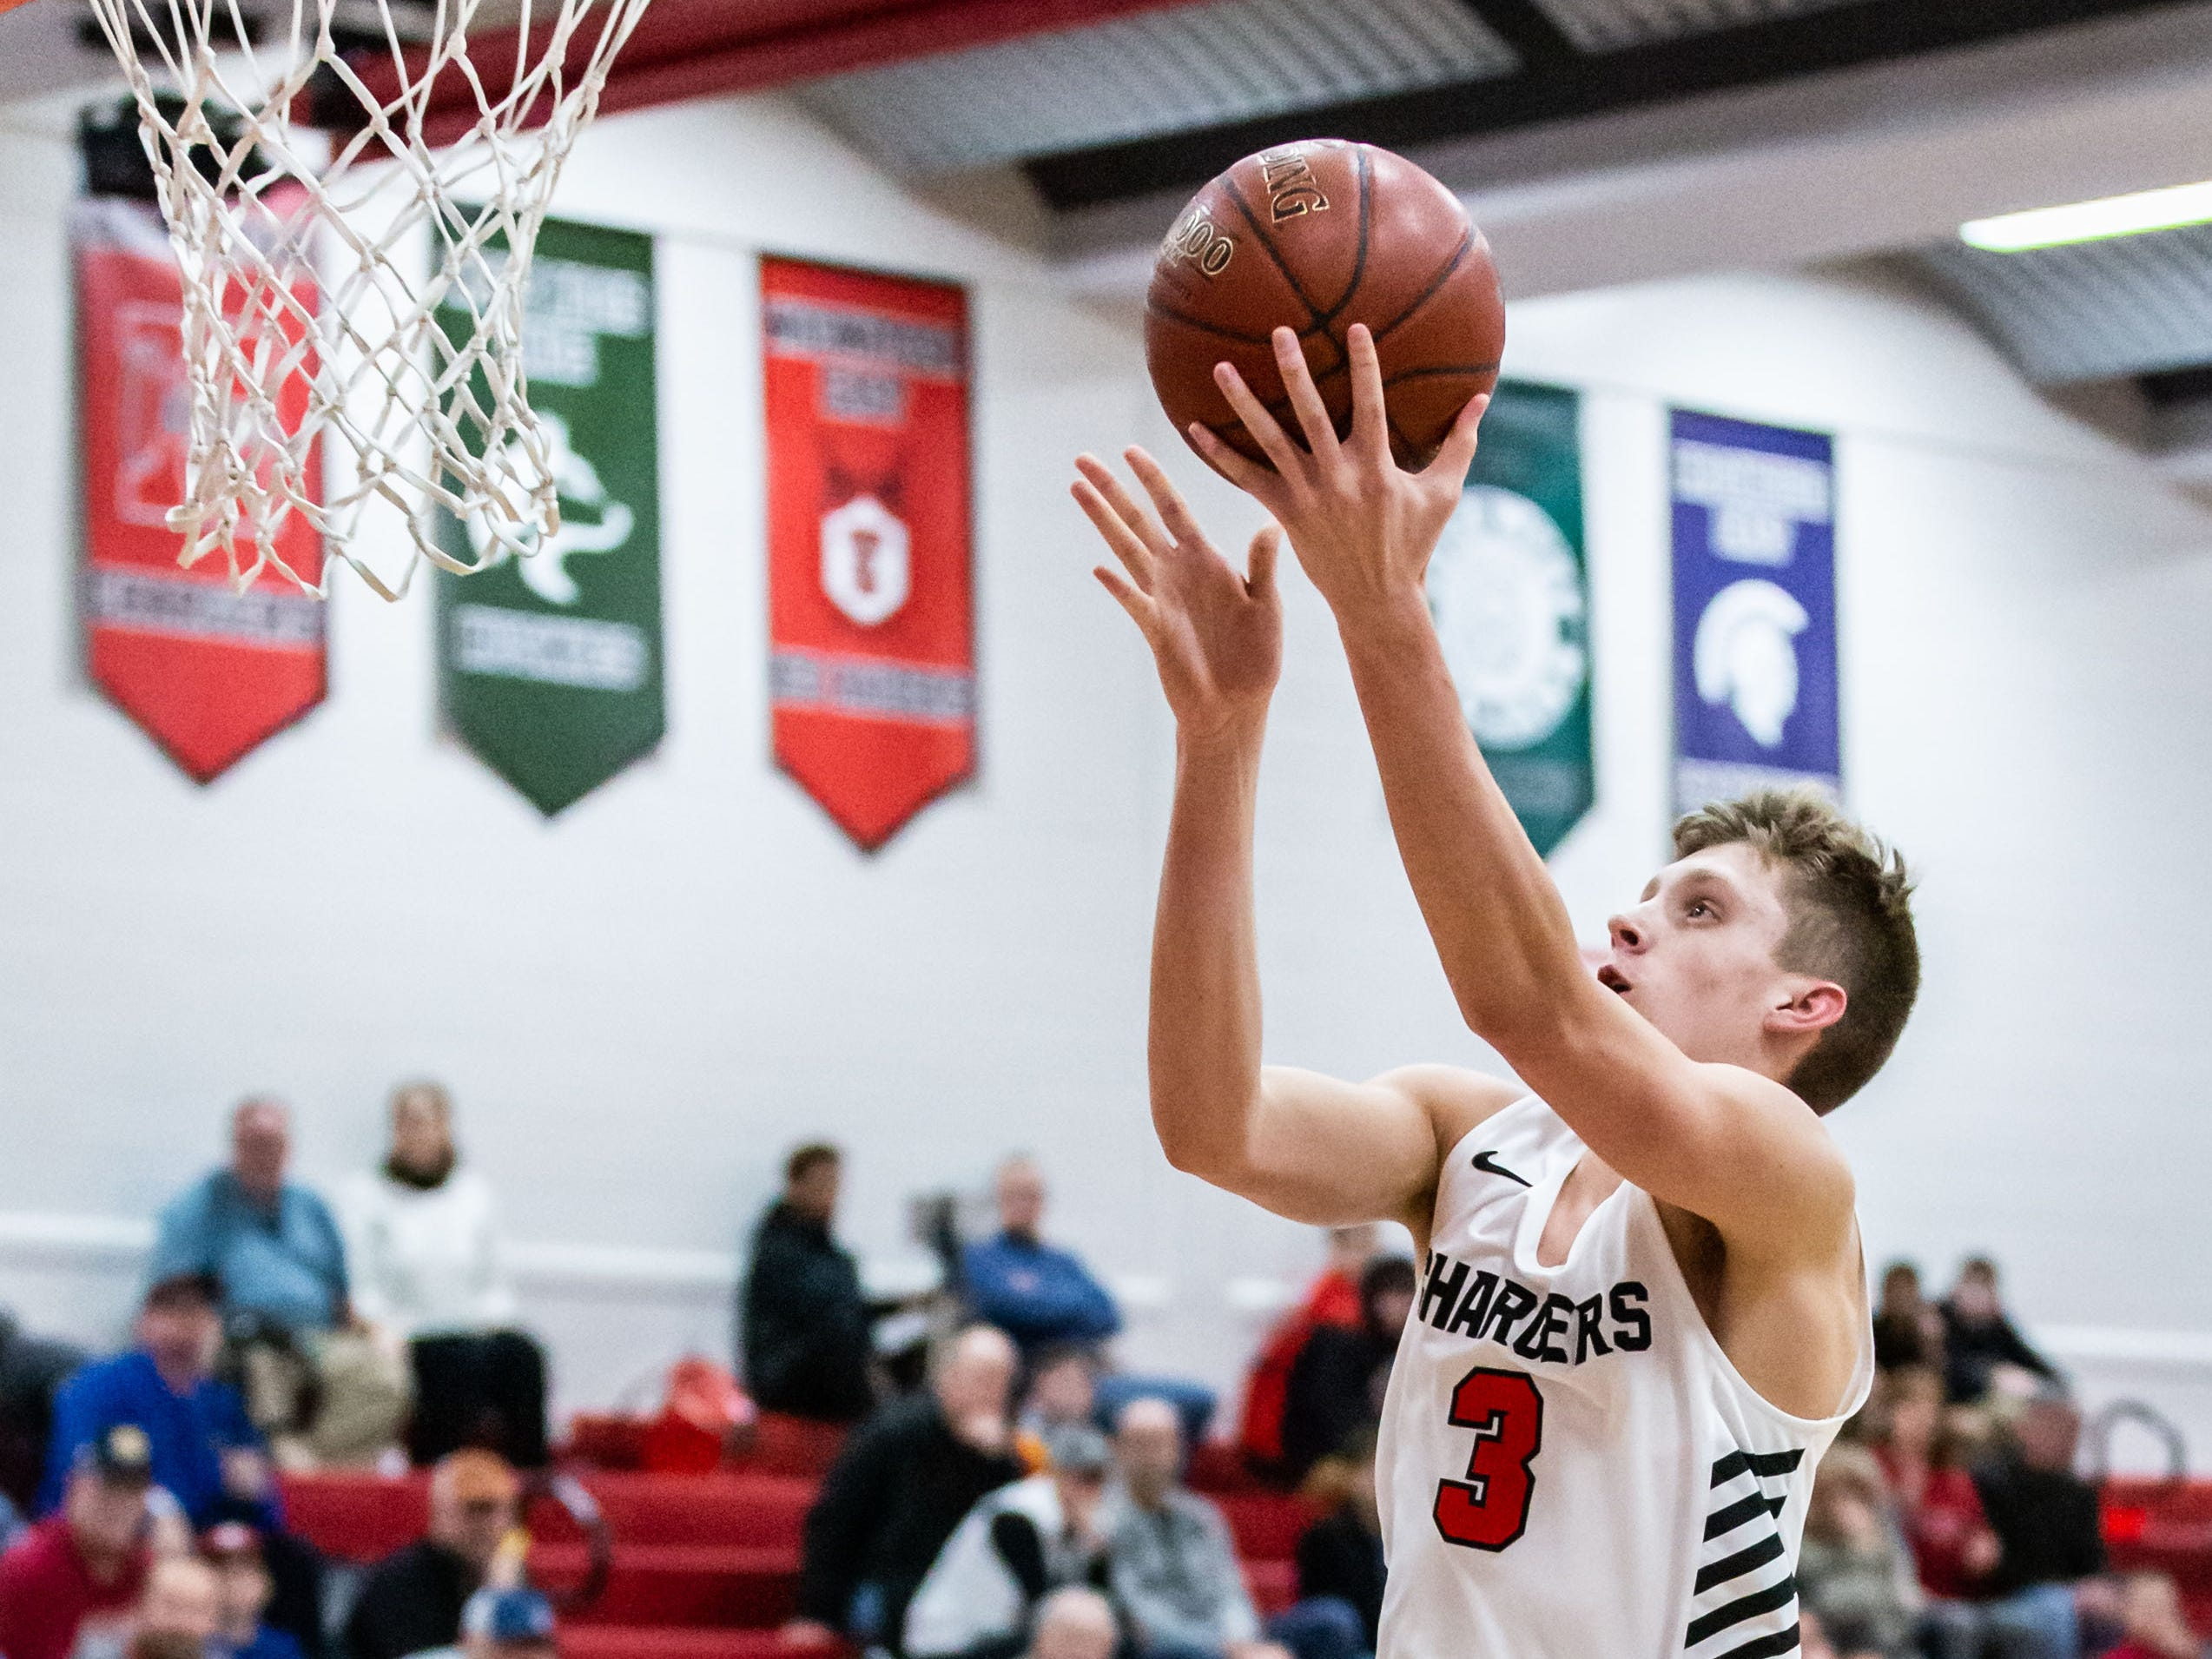 Hamilton's Tyler Ellingson (3) drives in for a layup during the game at home against Germantown on Thursday, Feb. 14, 2019.